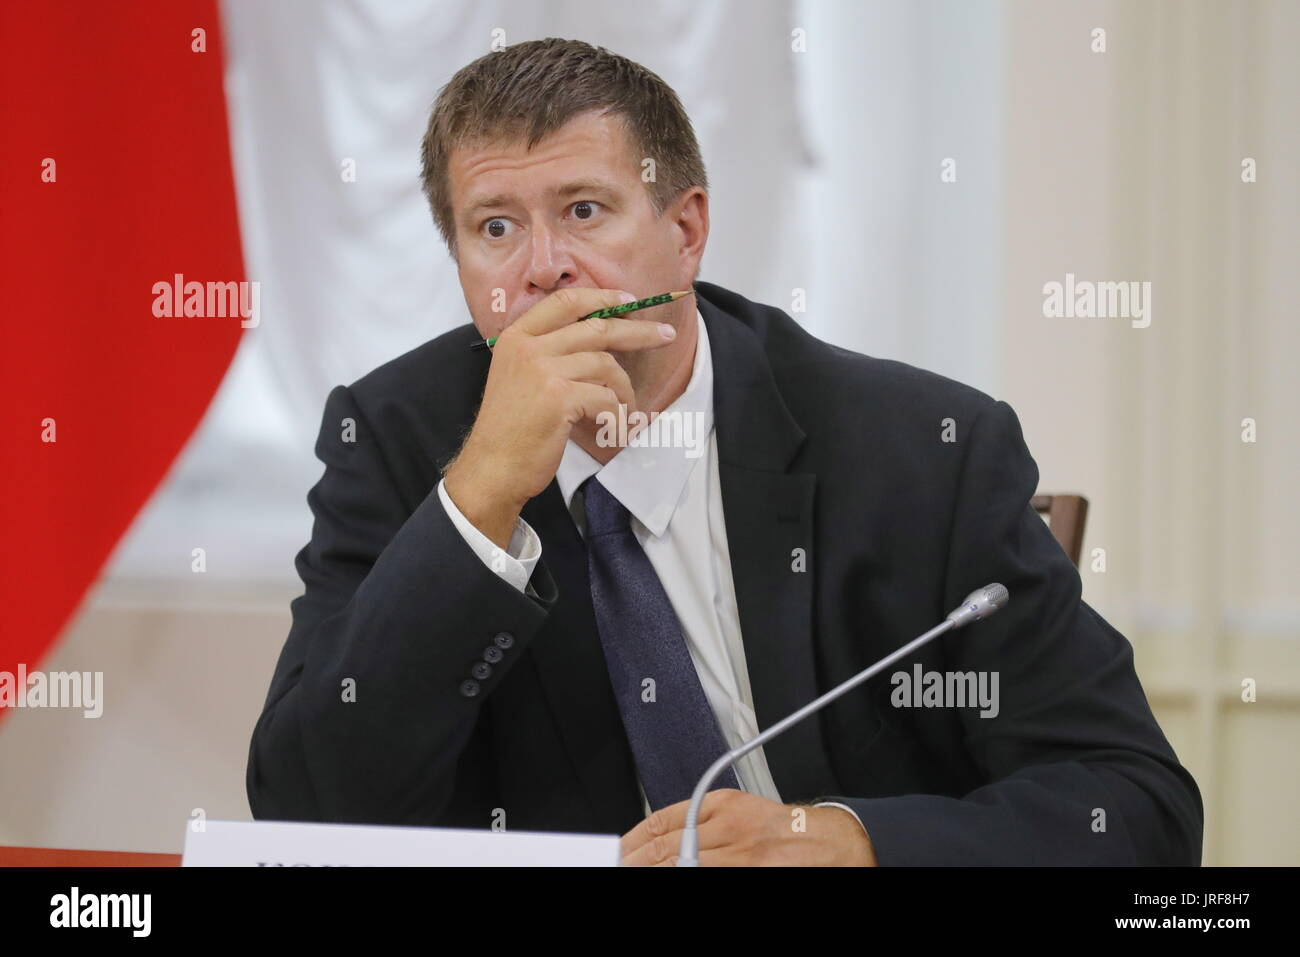 Kirov, Russia. 5th Aug, 2017. Russia's Justice Minister Alexander Konovalov attends a meeting of the Russian Presidential Council for the Local Self-Government Development. Credit: Mikhail Metzel/TASS/Alamy Live News - Stock Image